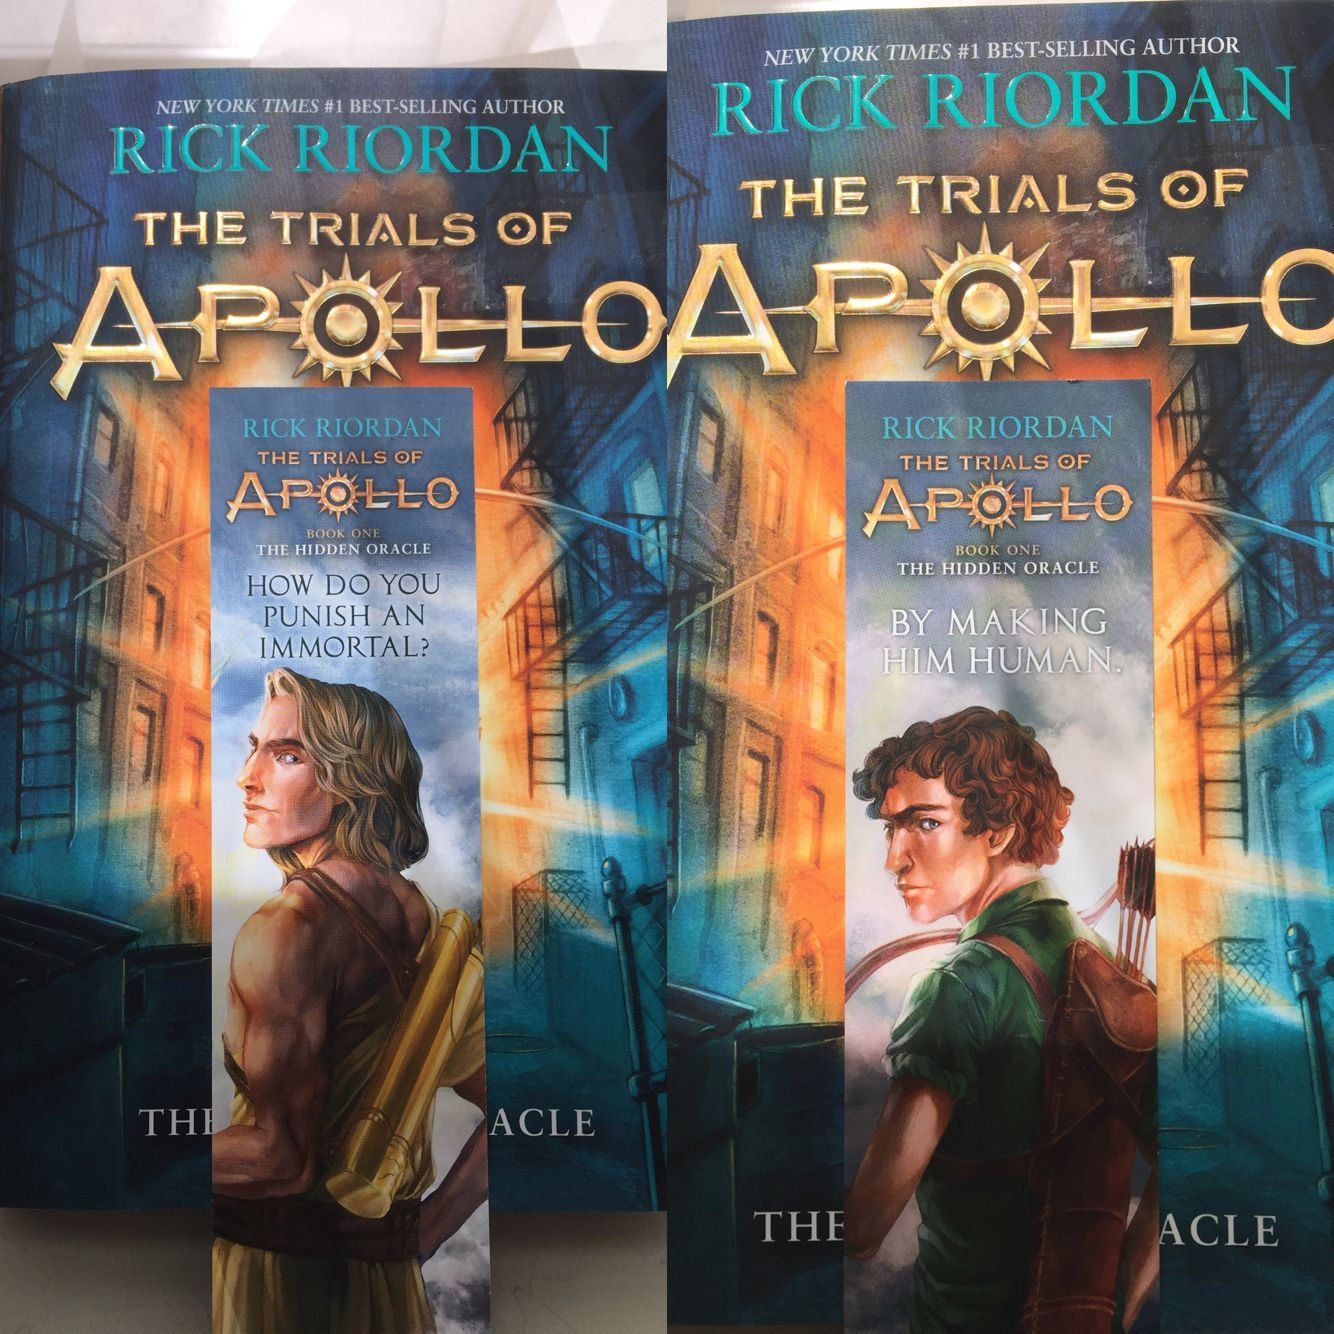 I got the The Trials of Apollo: The Hidden Oracle at Walmart over ...